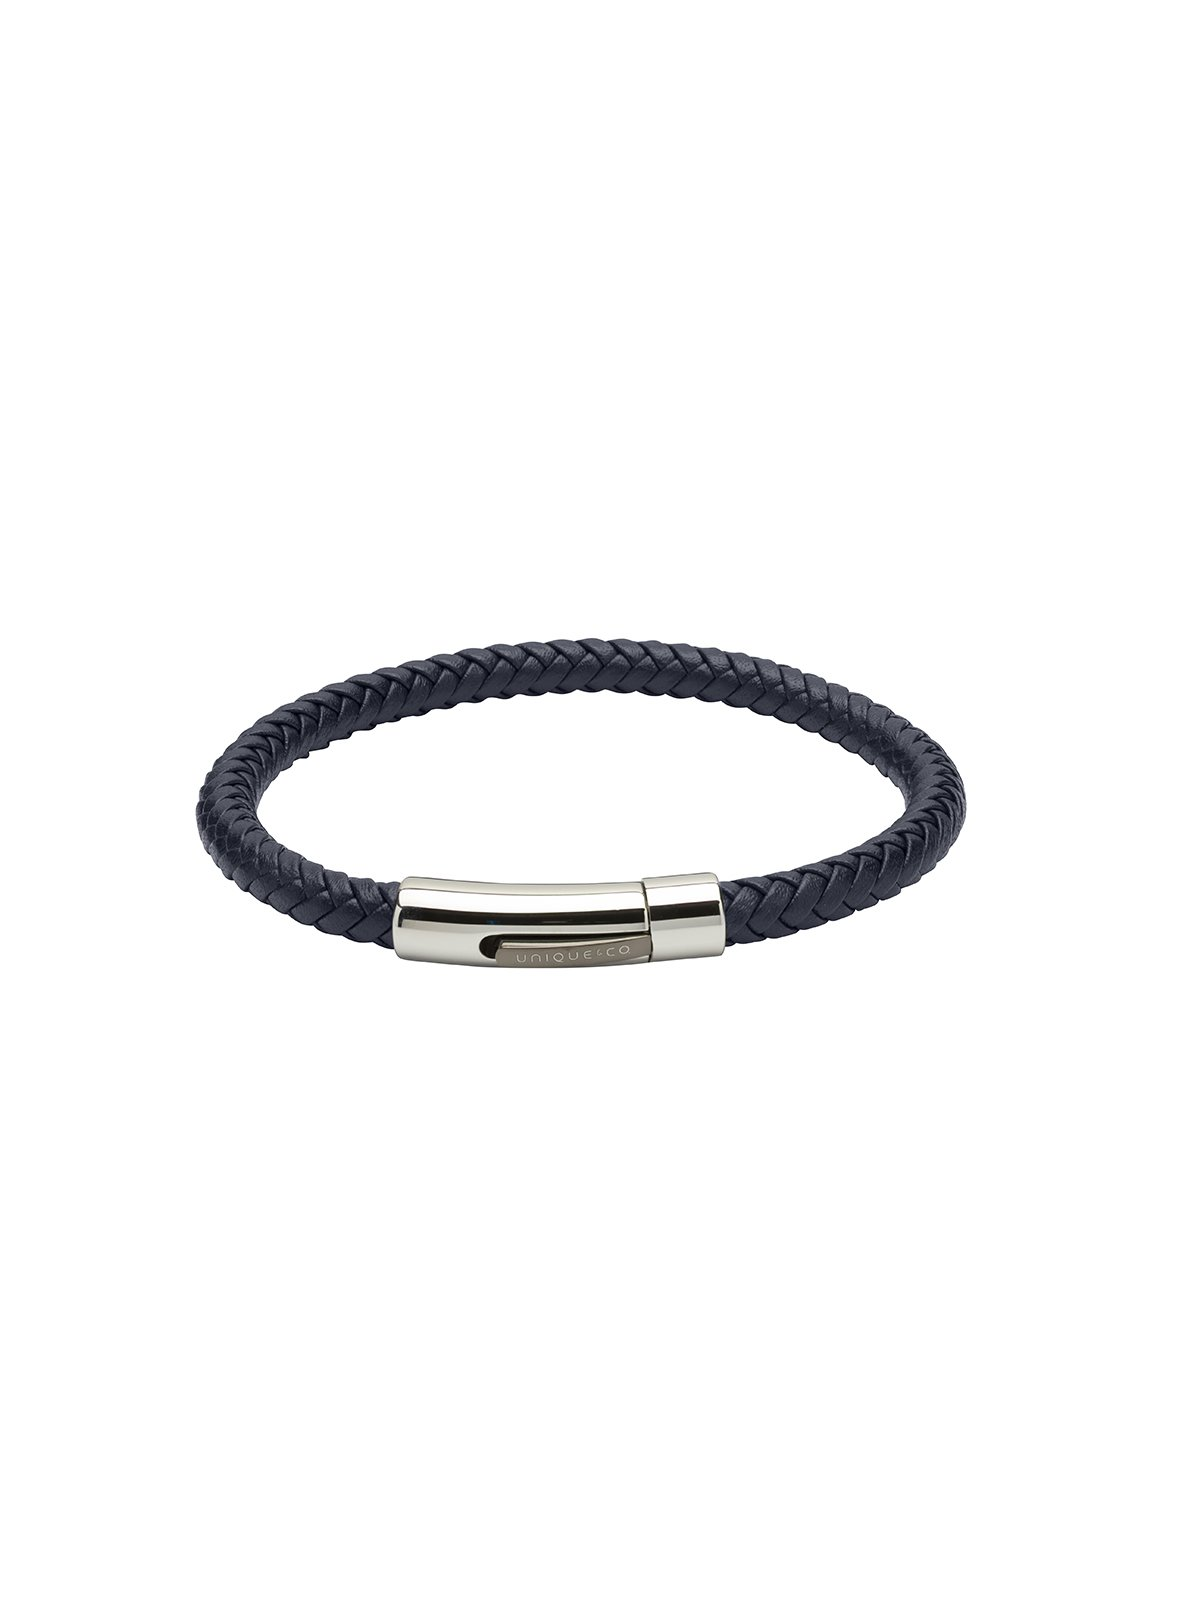 Unique & Co. 21cm Blue Leather Bracelet B371BLUE/21CM